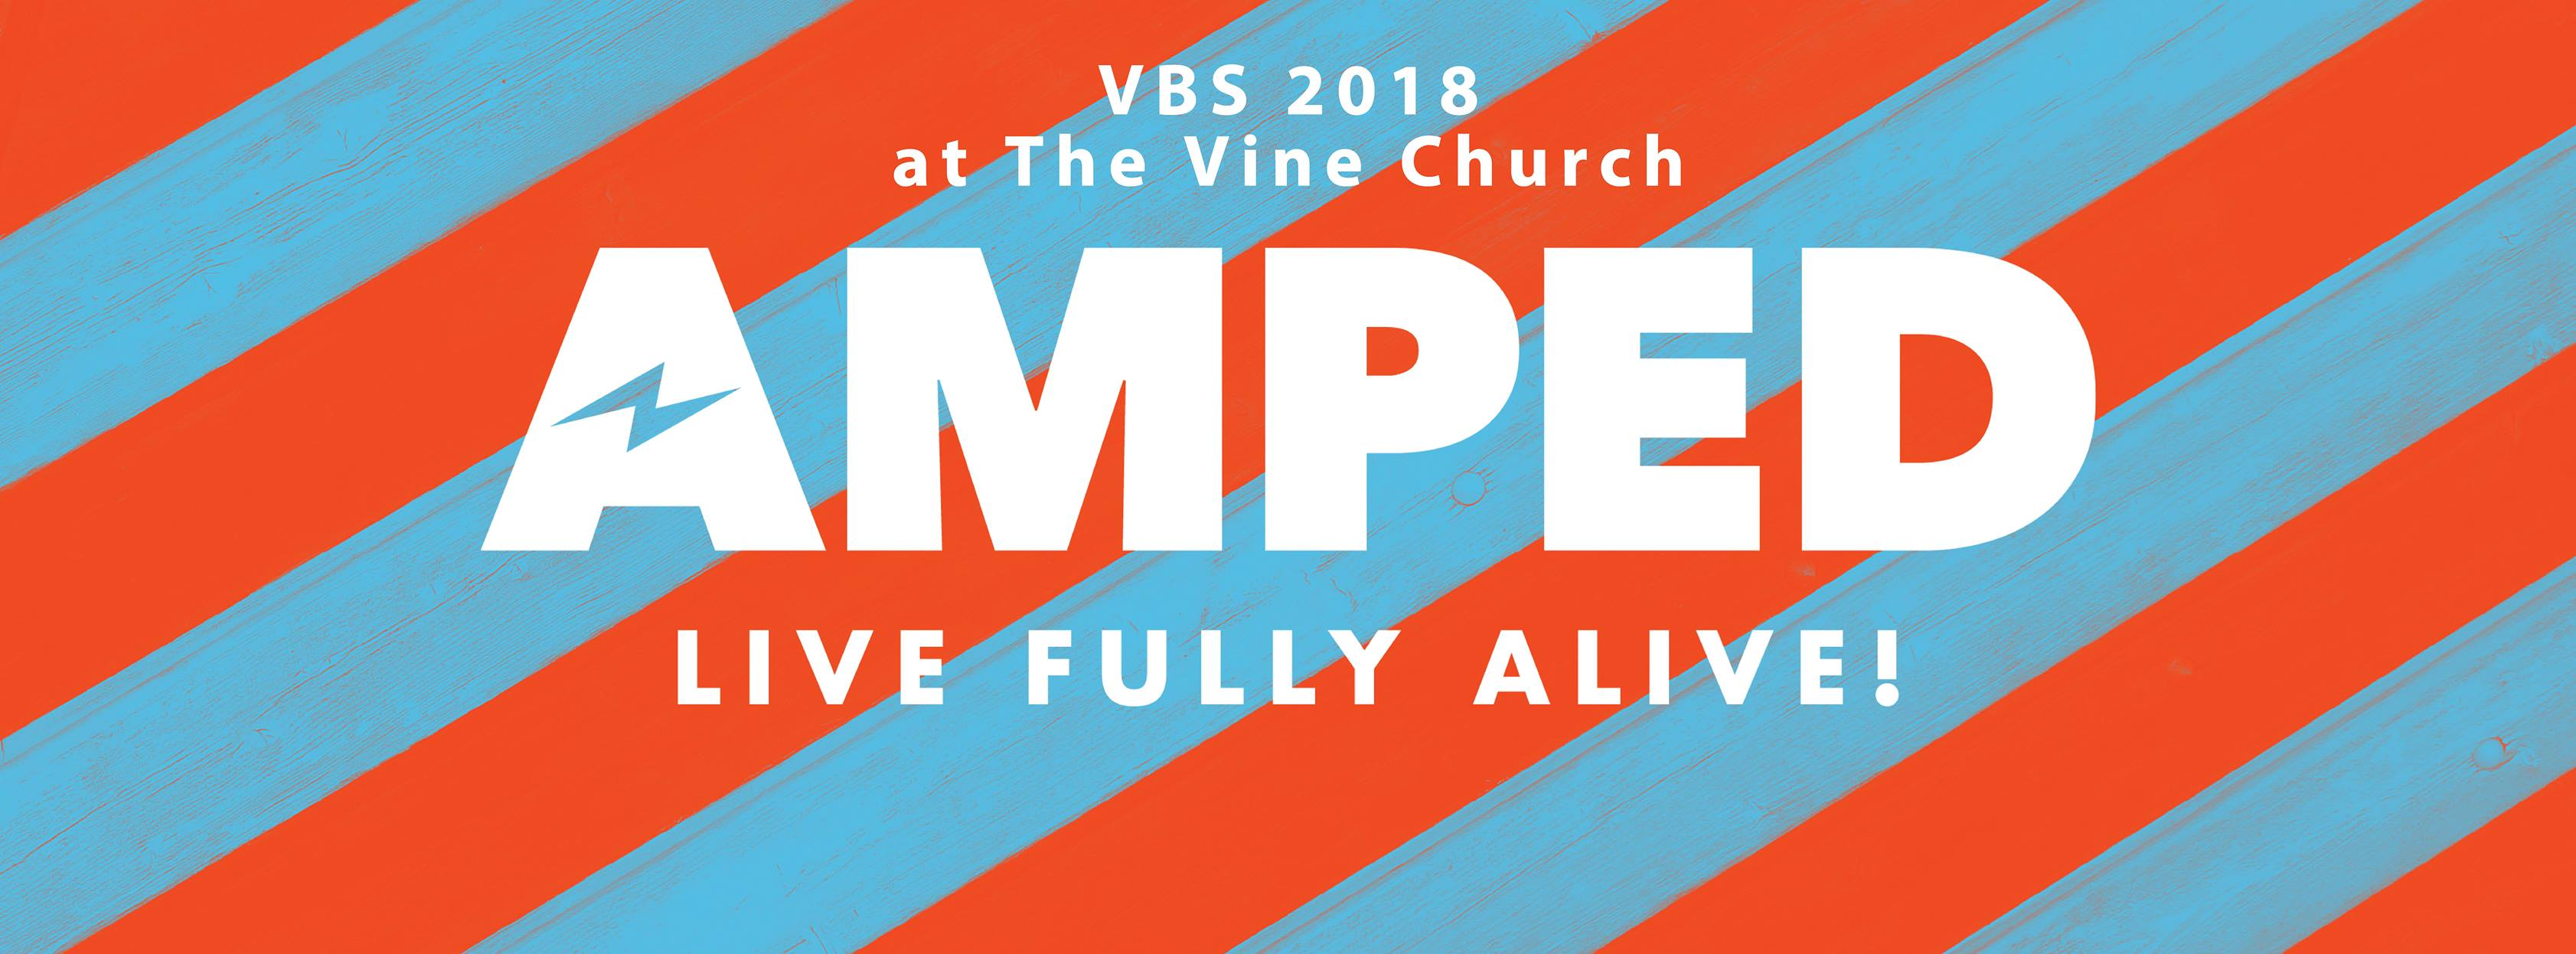 amped_vine_banner